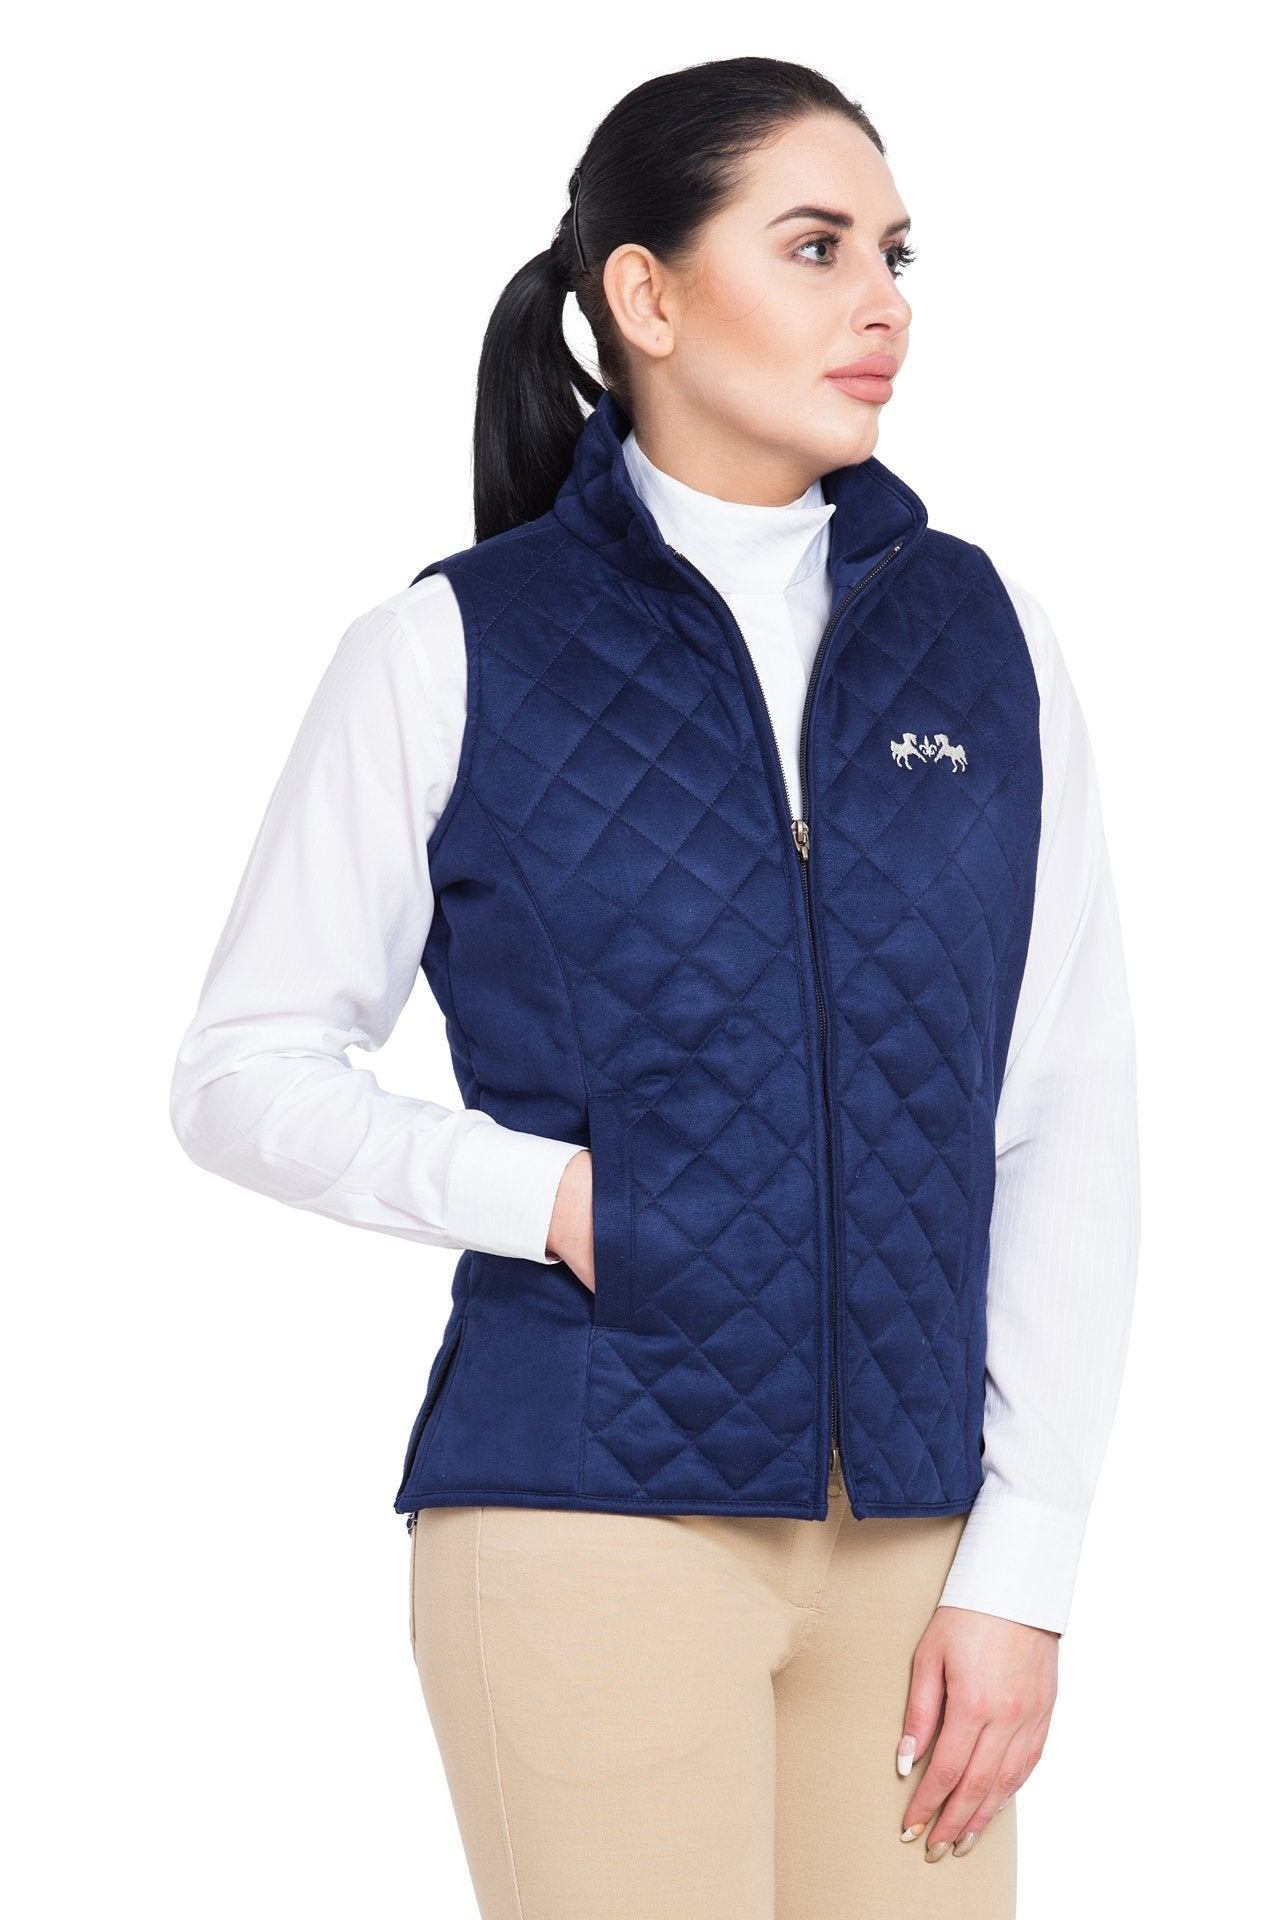 Equine Couture Ladies Spinnaker Micro Suede Vest_1